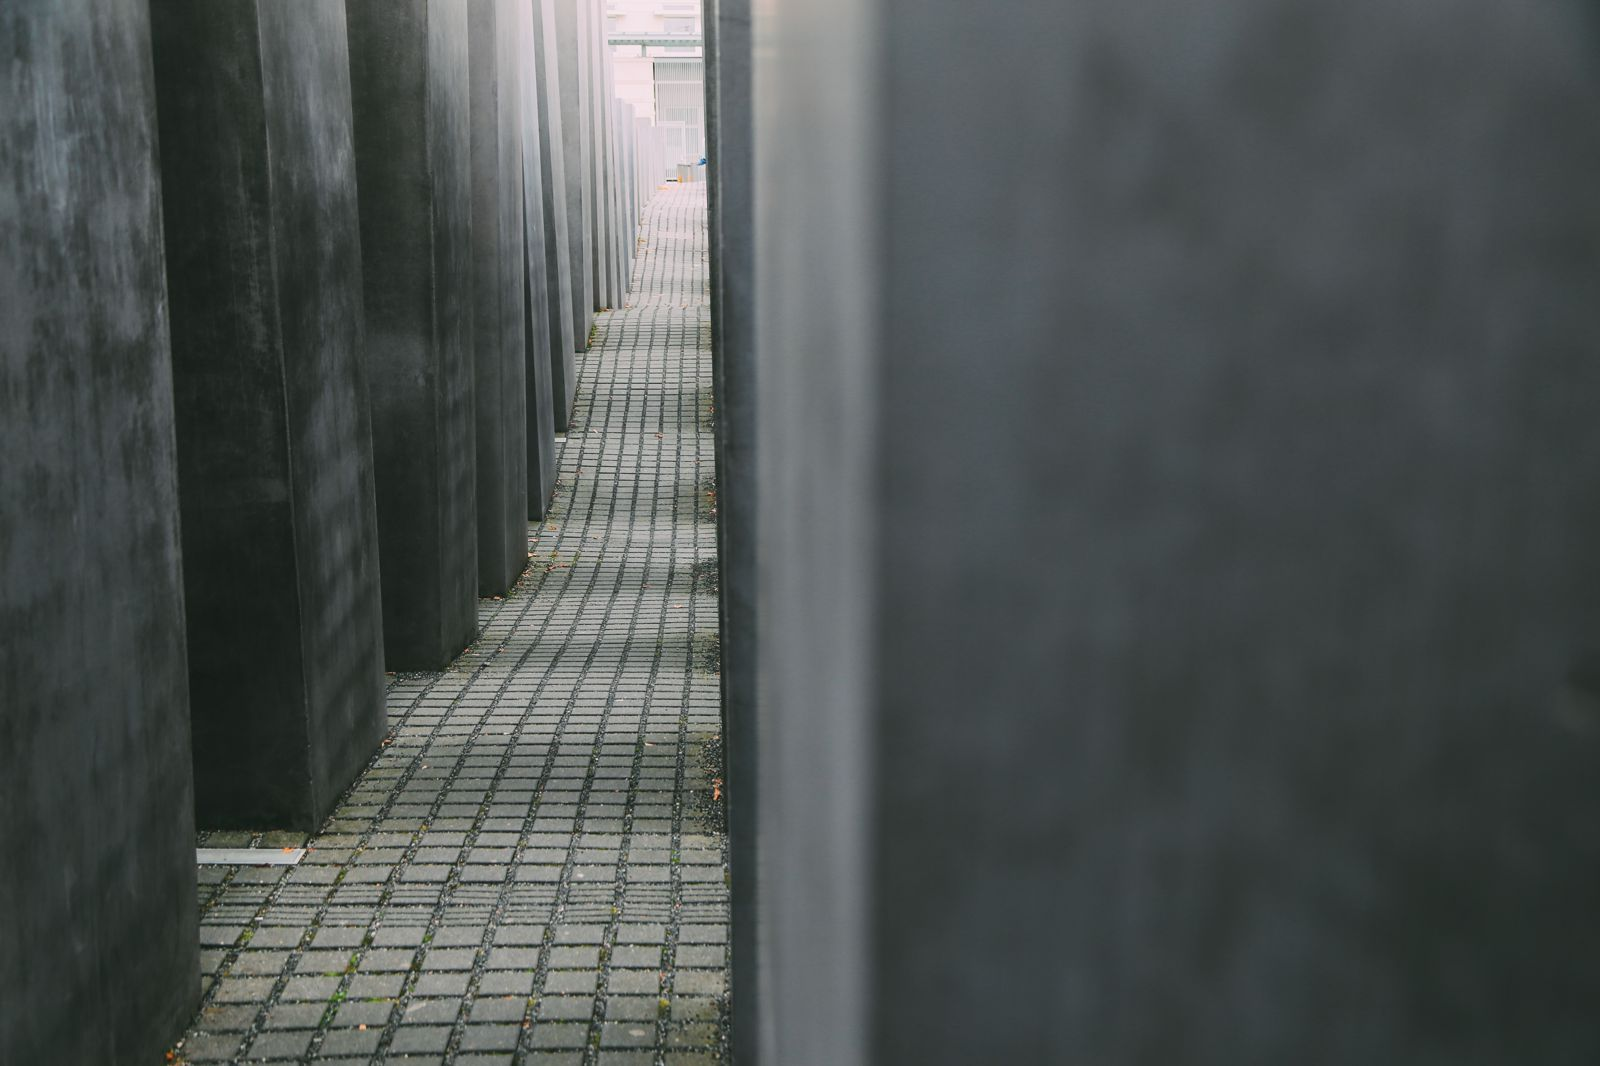 A Memoir To The Fallen - The Holocaust Memorial Also known as the Memorial to the Murdered Jews of Europe (4)